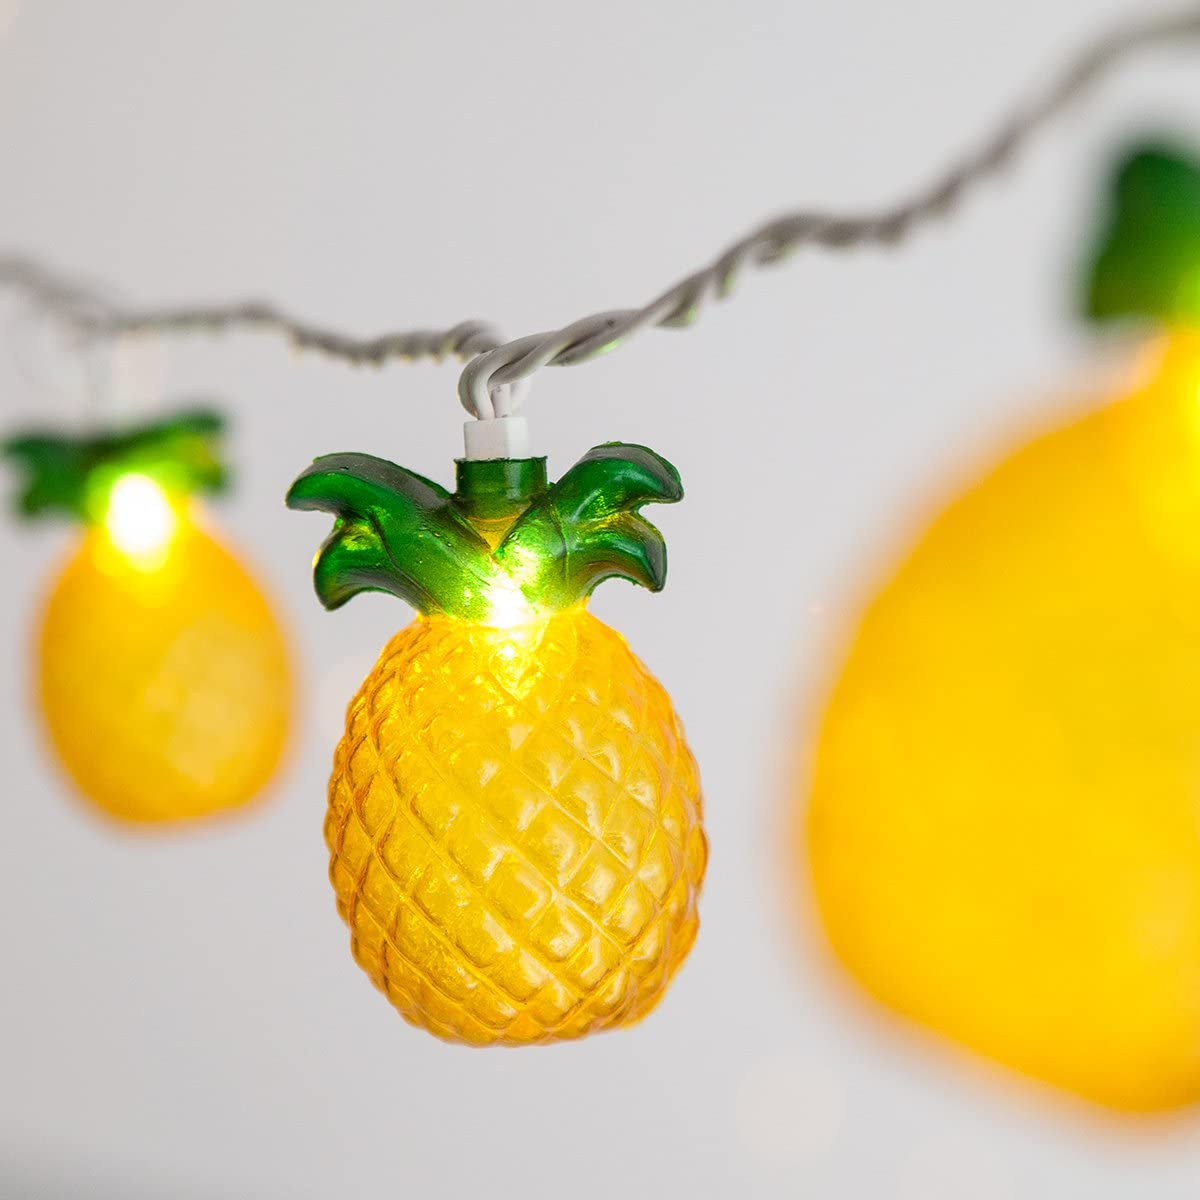 Clearance SALE Limited time Outdoor Party Lights Patio String We OFFer at cheap prices - Summer